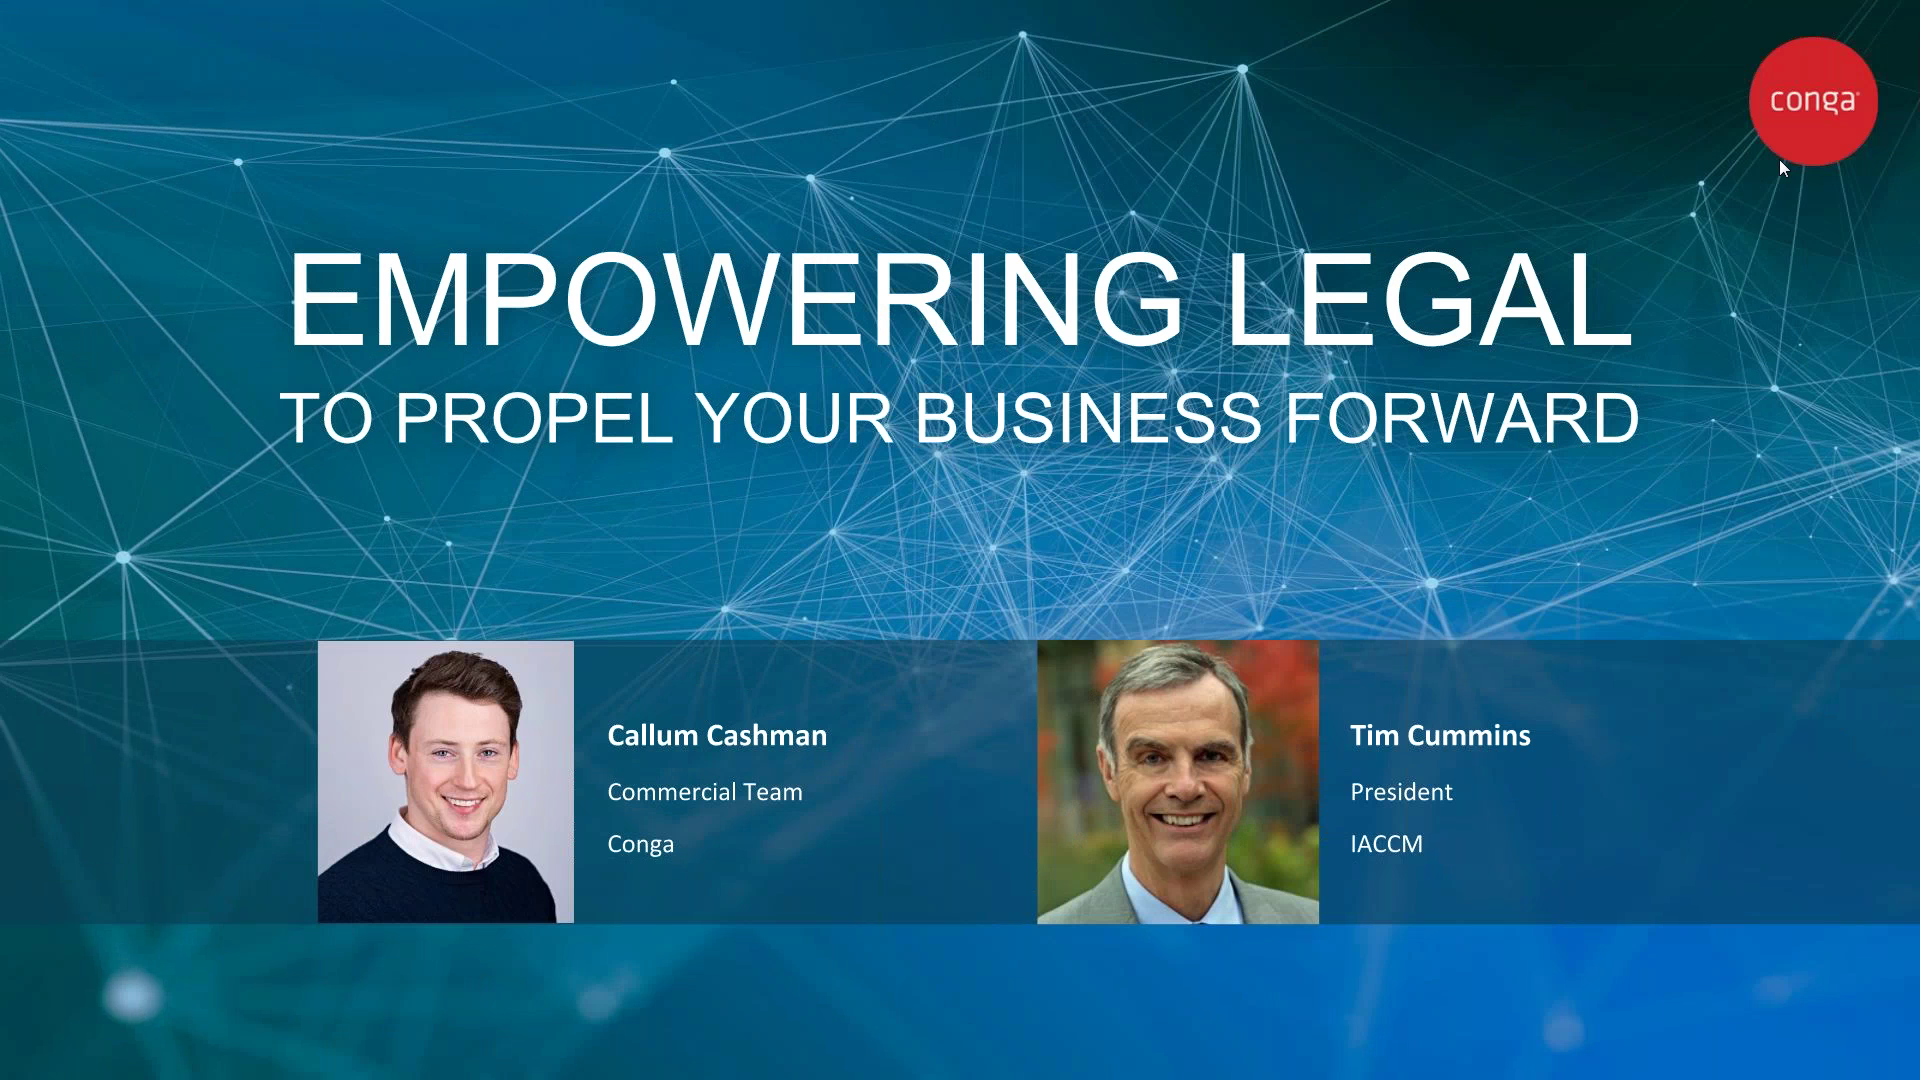 Empowering Legal to Propel your Business Forward